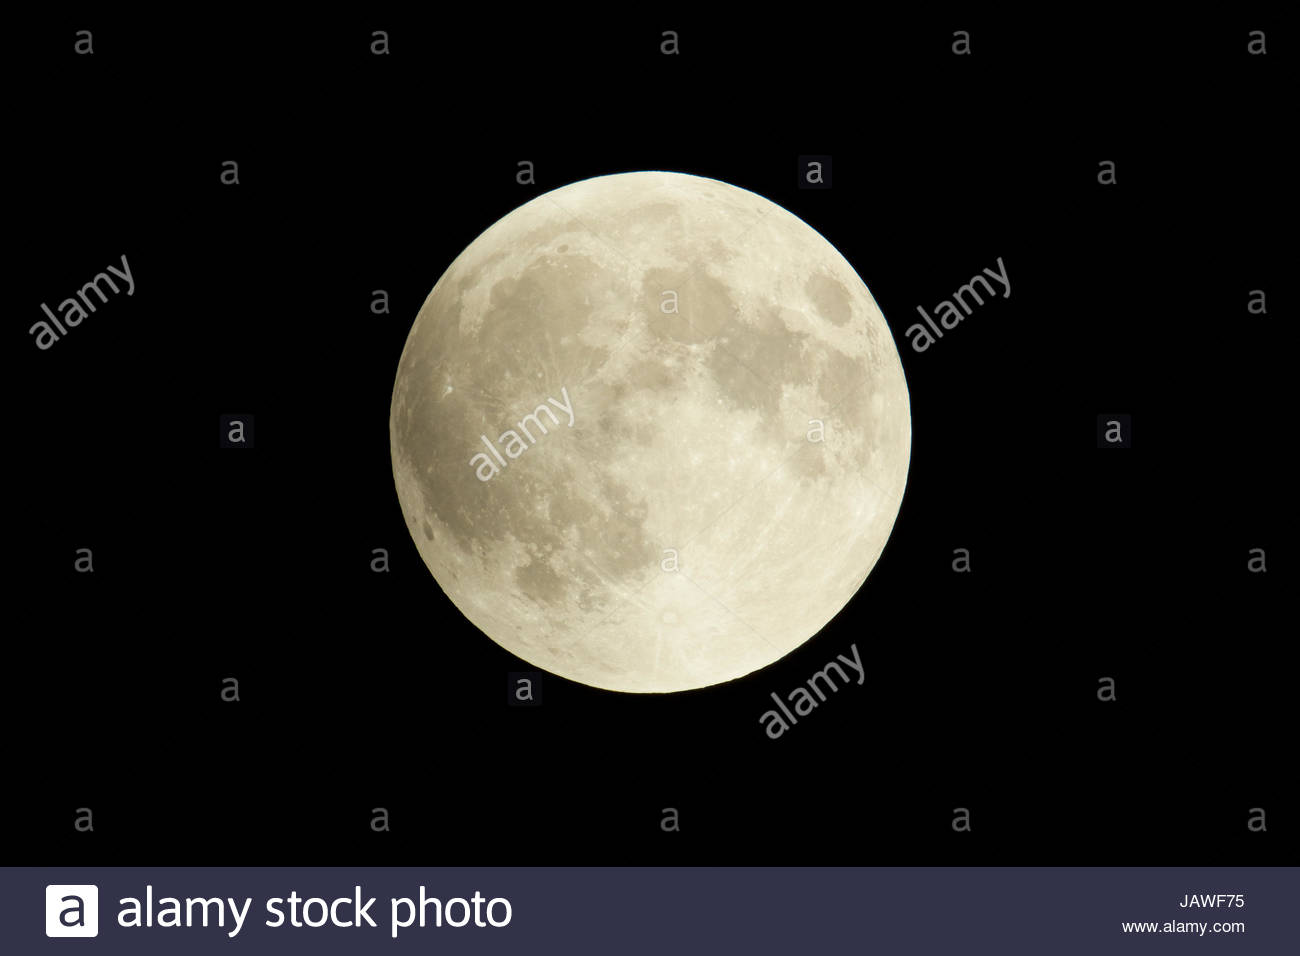 Total lunar eclipse of September 27, 2015 supermoon, the moon at its closest point to earth in its orbit. - Stock Image